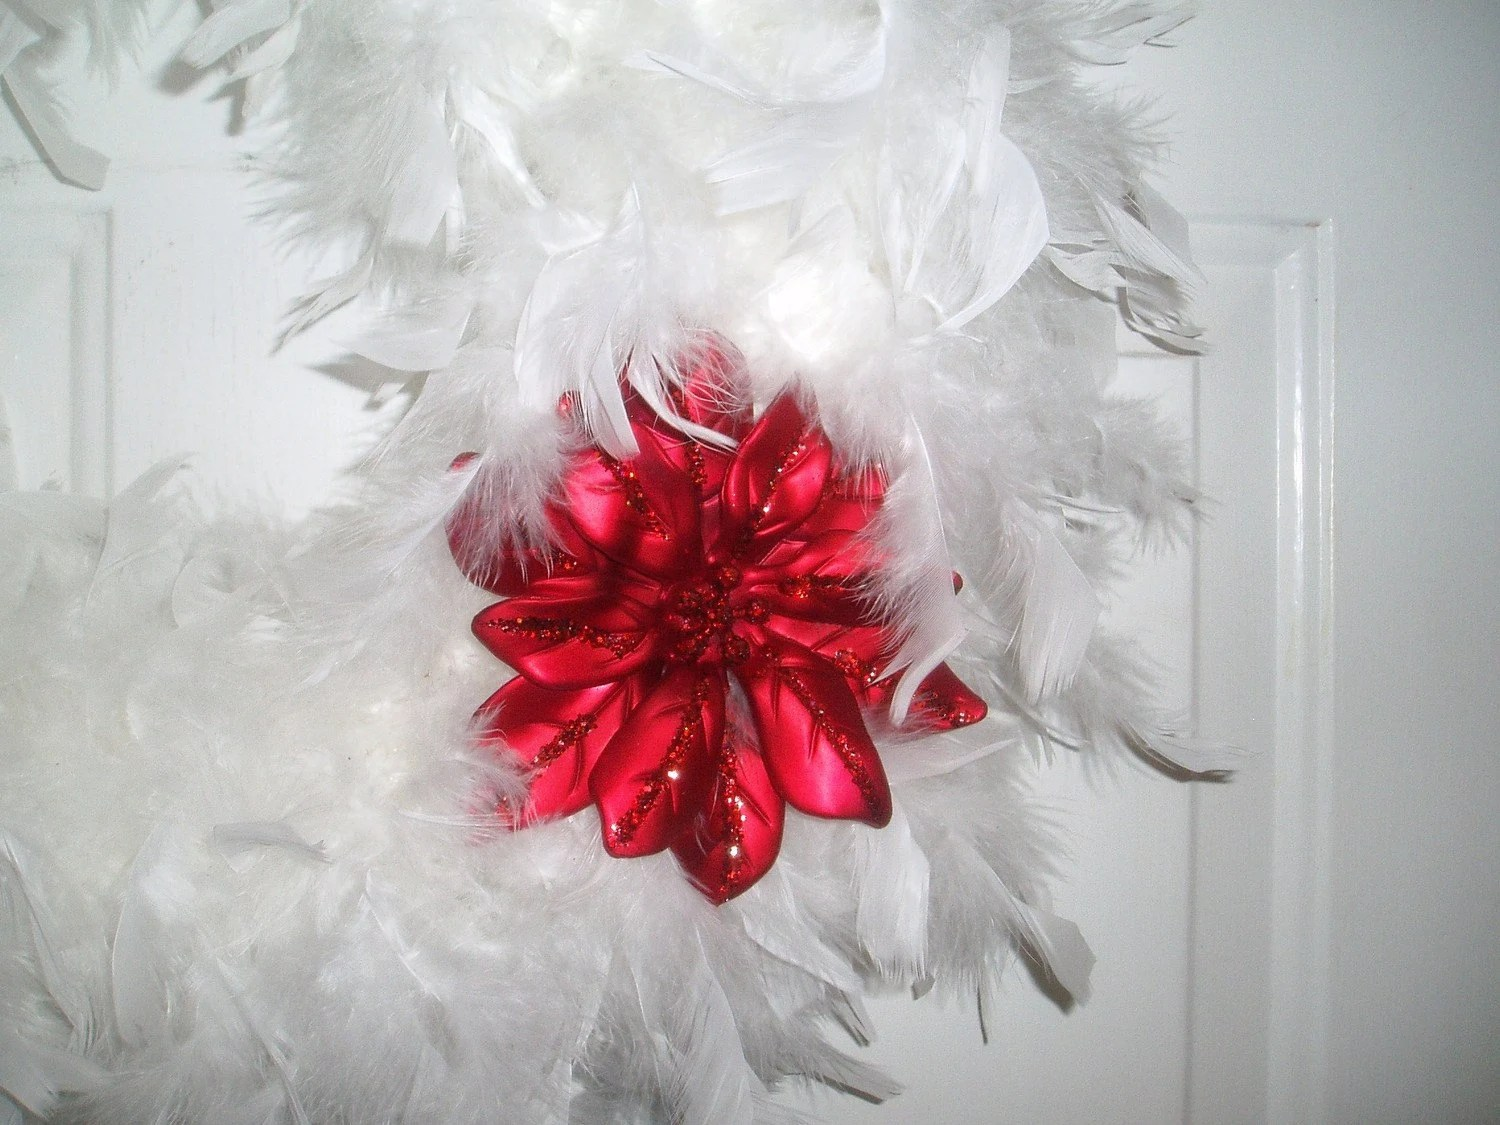 White Feather Christmas Wreath Red Poinsetta Ornament by dardawn